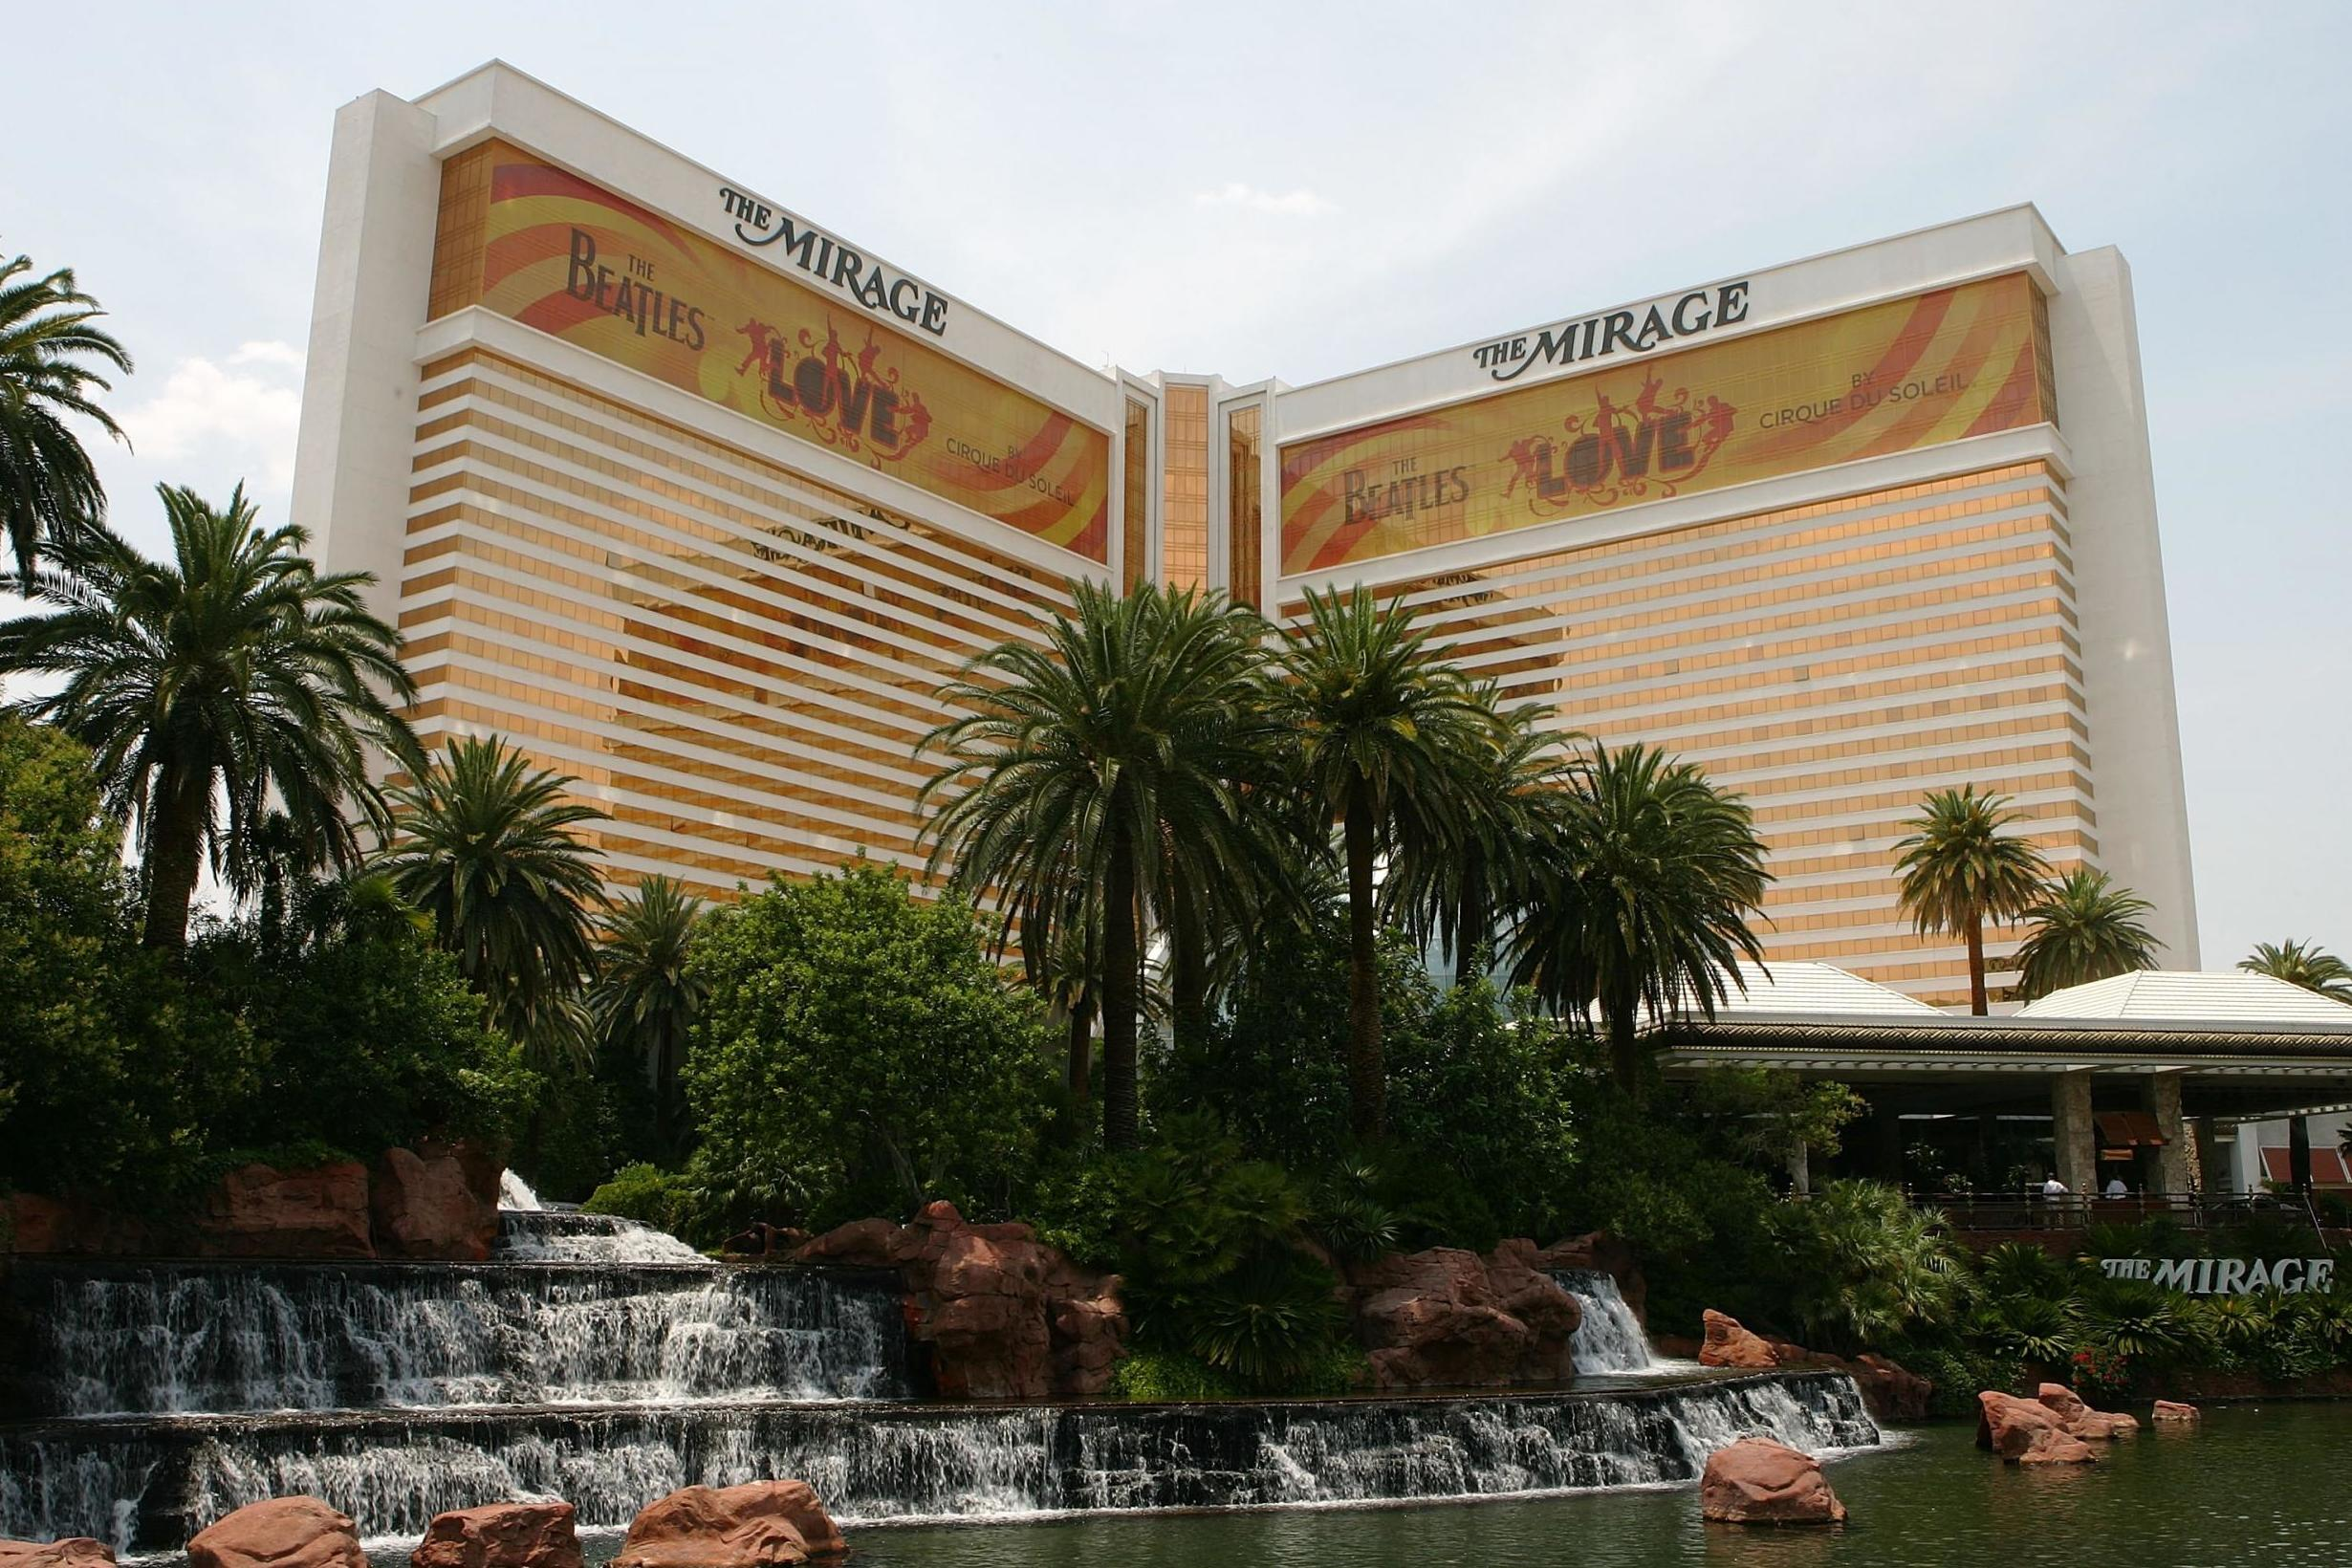 MGM Mirage guest tests positive for coronavirus COVID-19